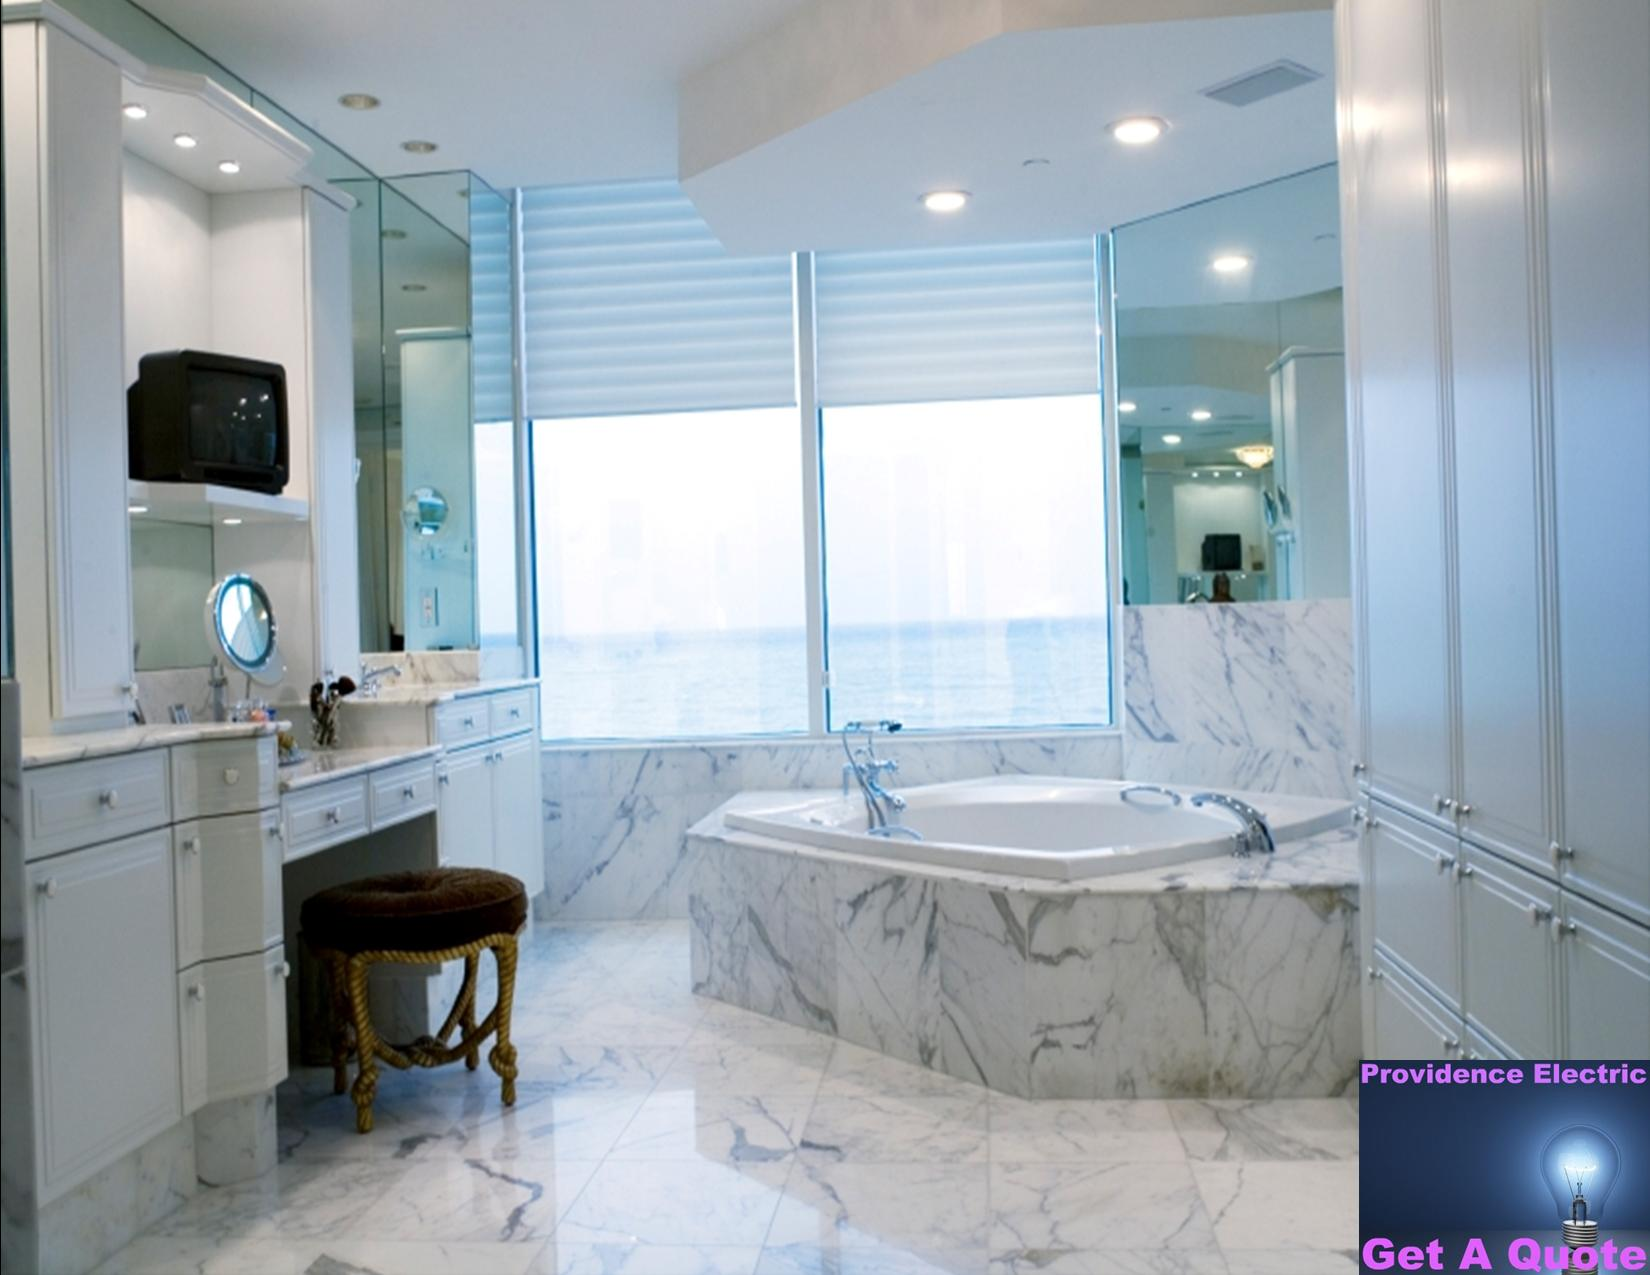 Diseno De Baños Alargados:Bathroom Window Treatment